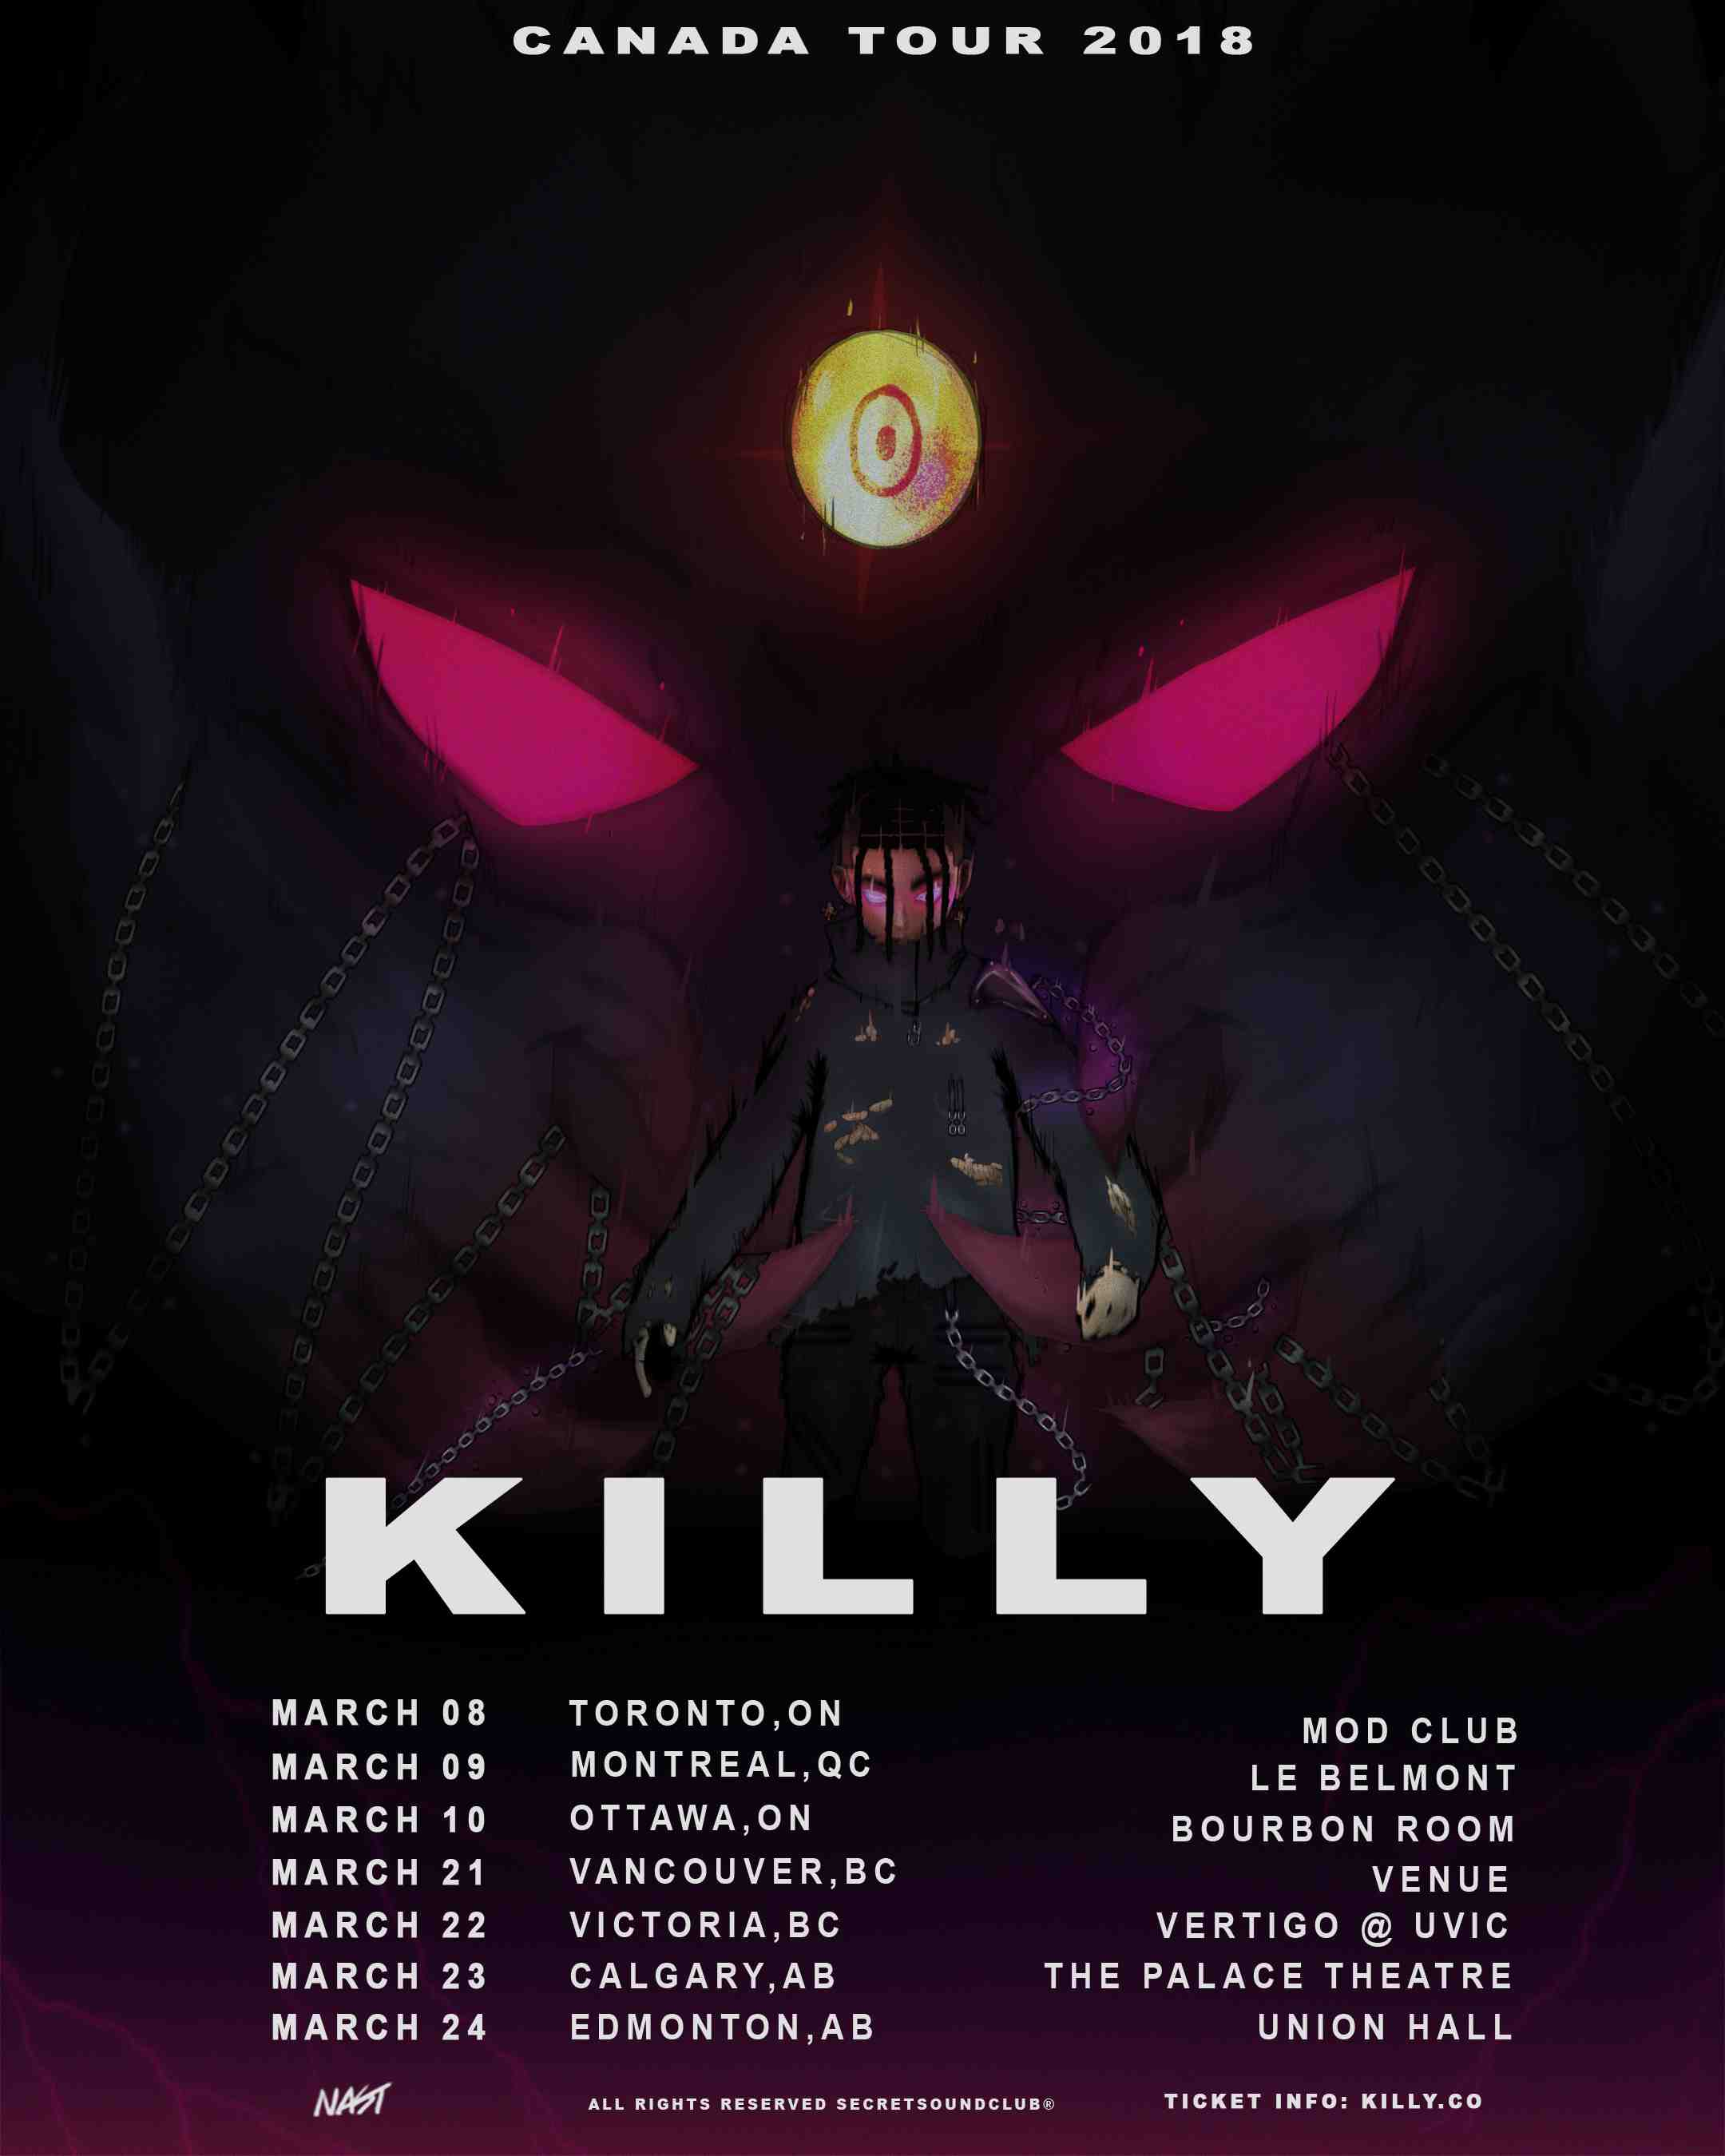 KILLY Live In Ottawa March 10th